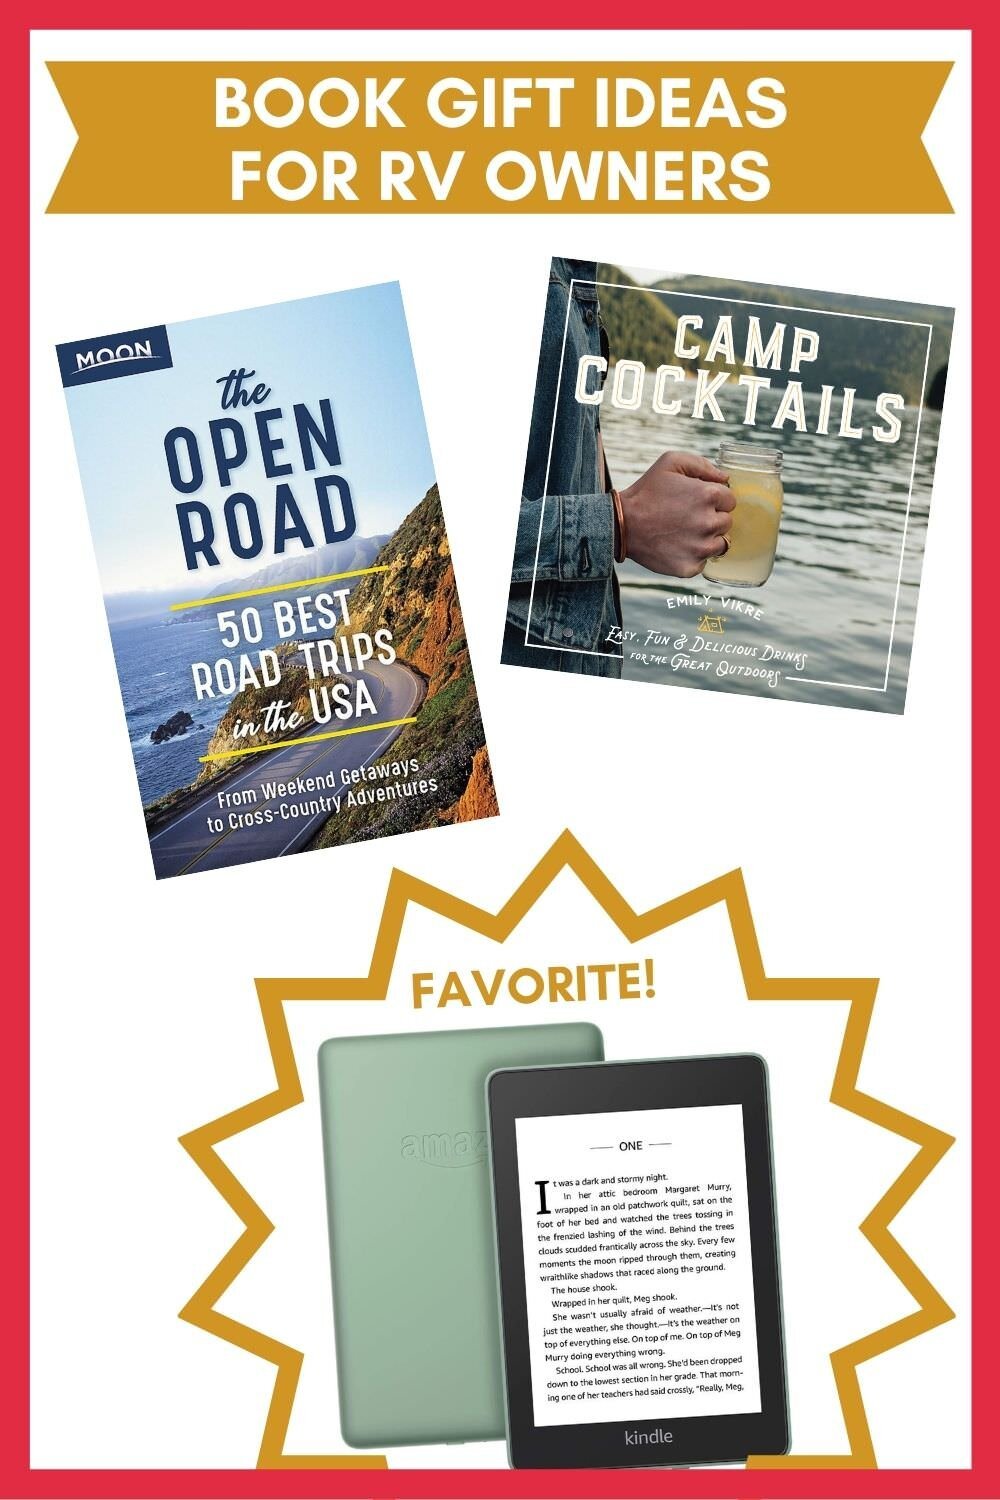 Book related Christmas gifts for RV Owners